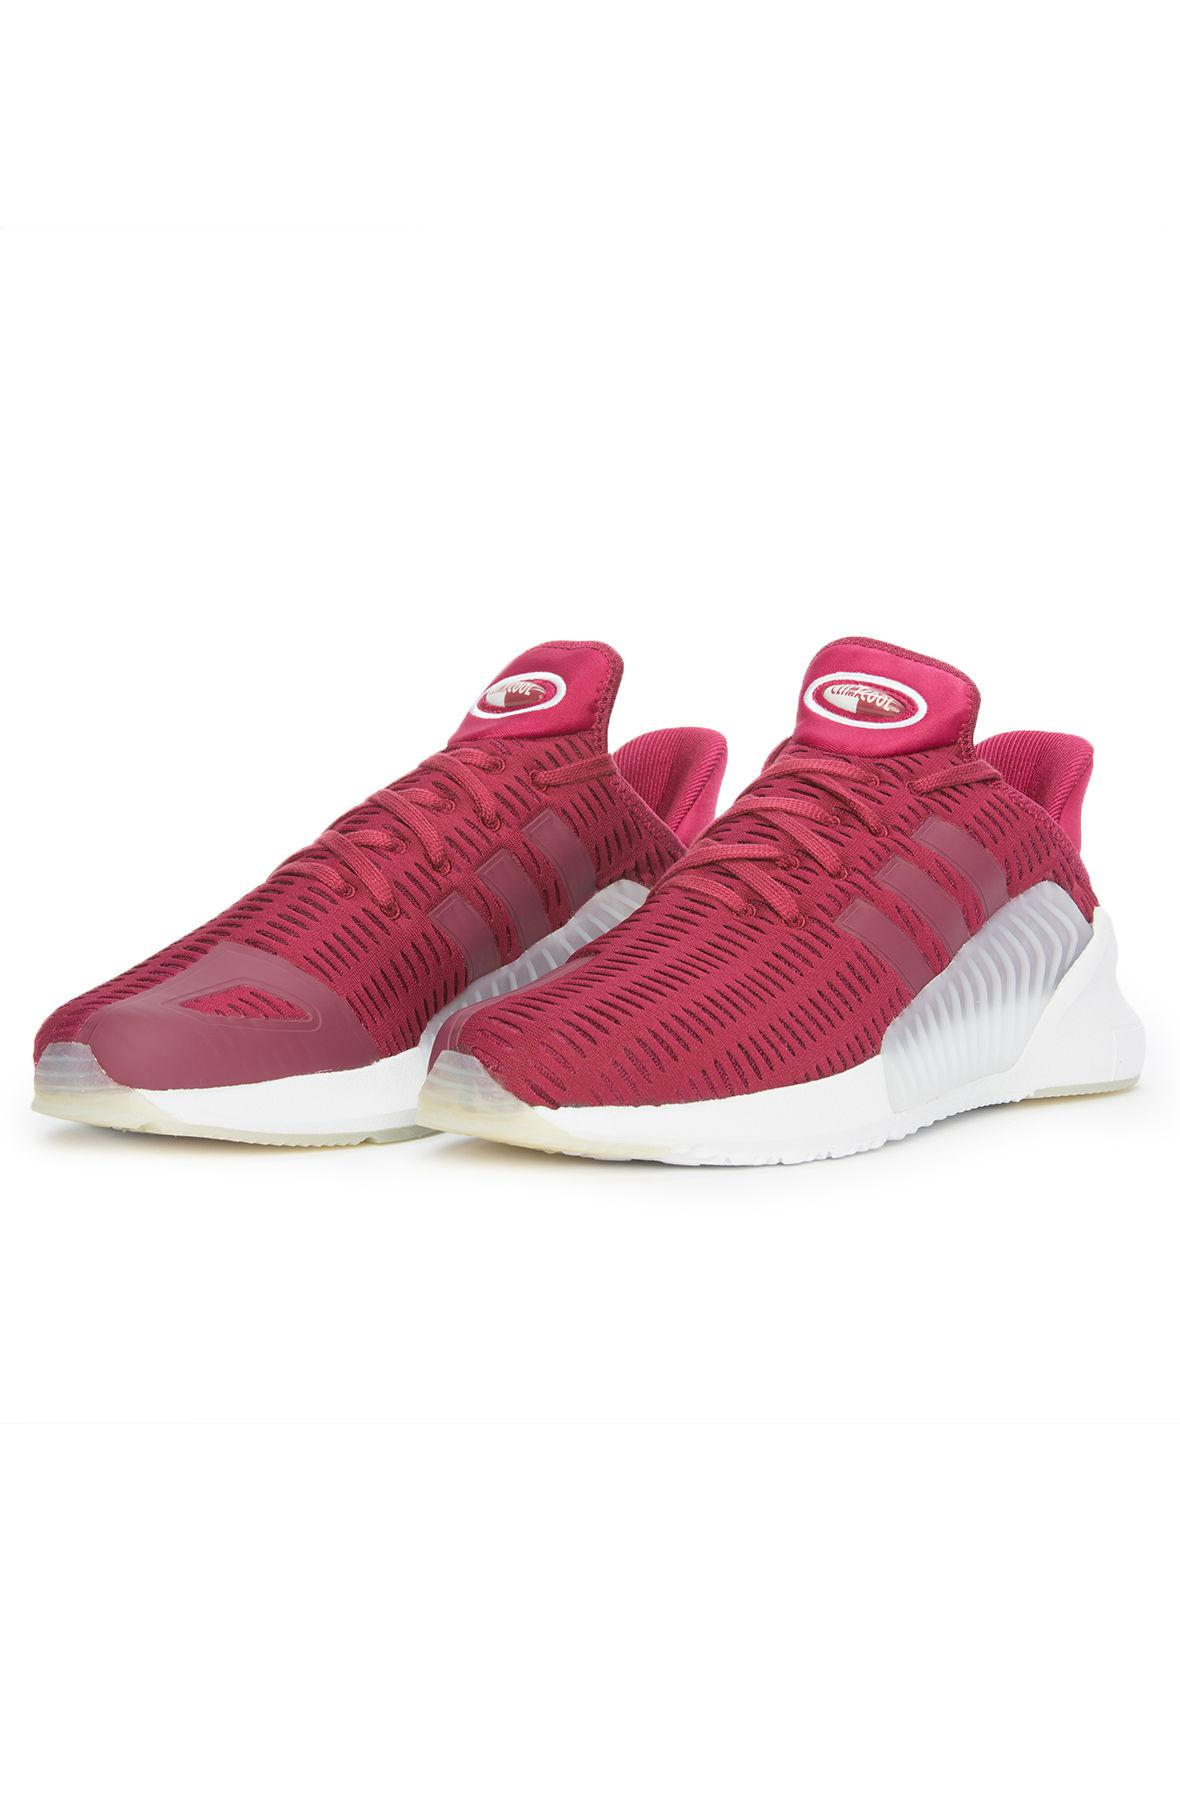 quality design 5c43a 172fe Lyst - adidas The Climacool 0217 In Mystery Ruby And Footwea